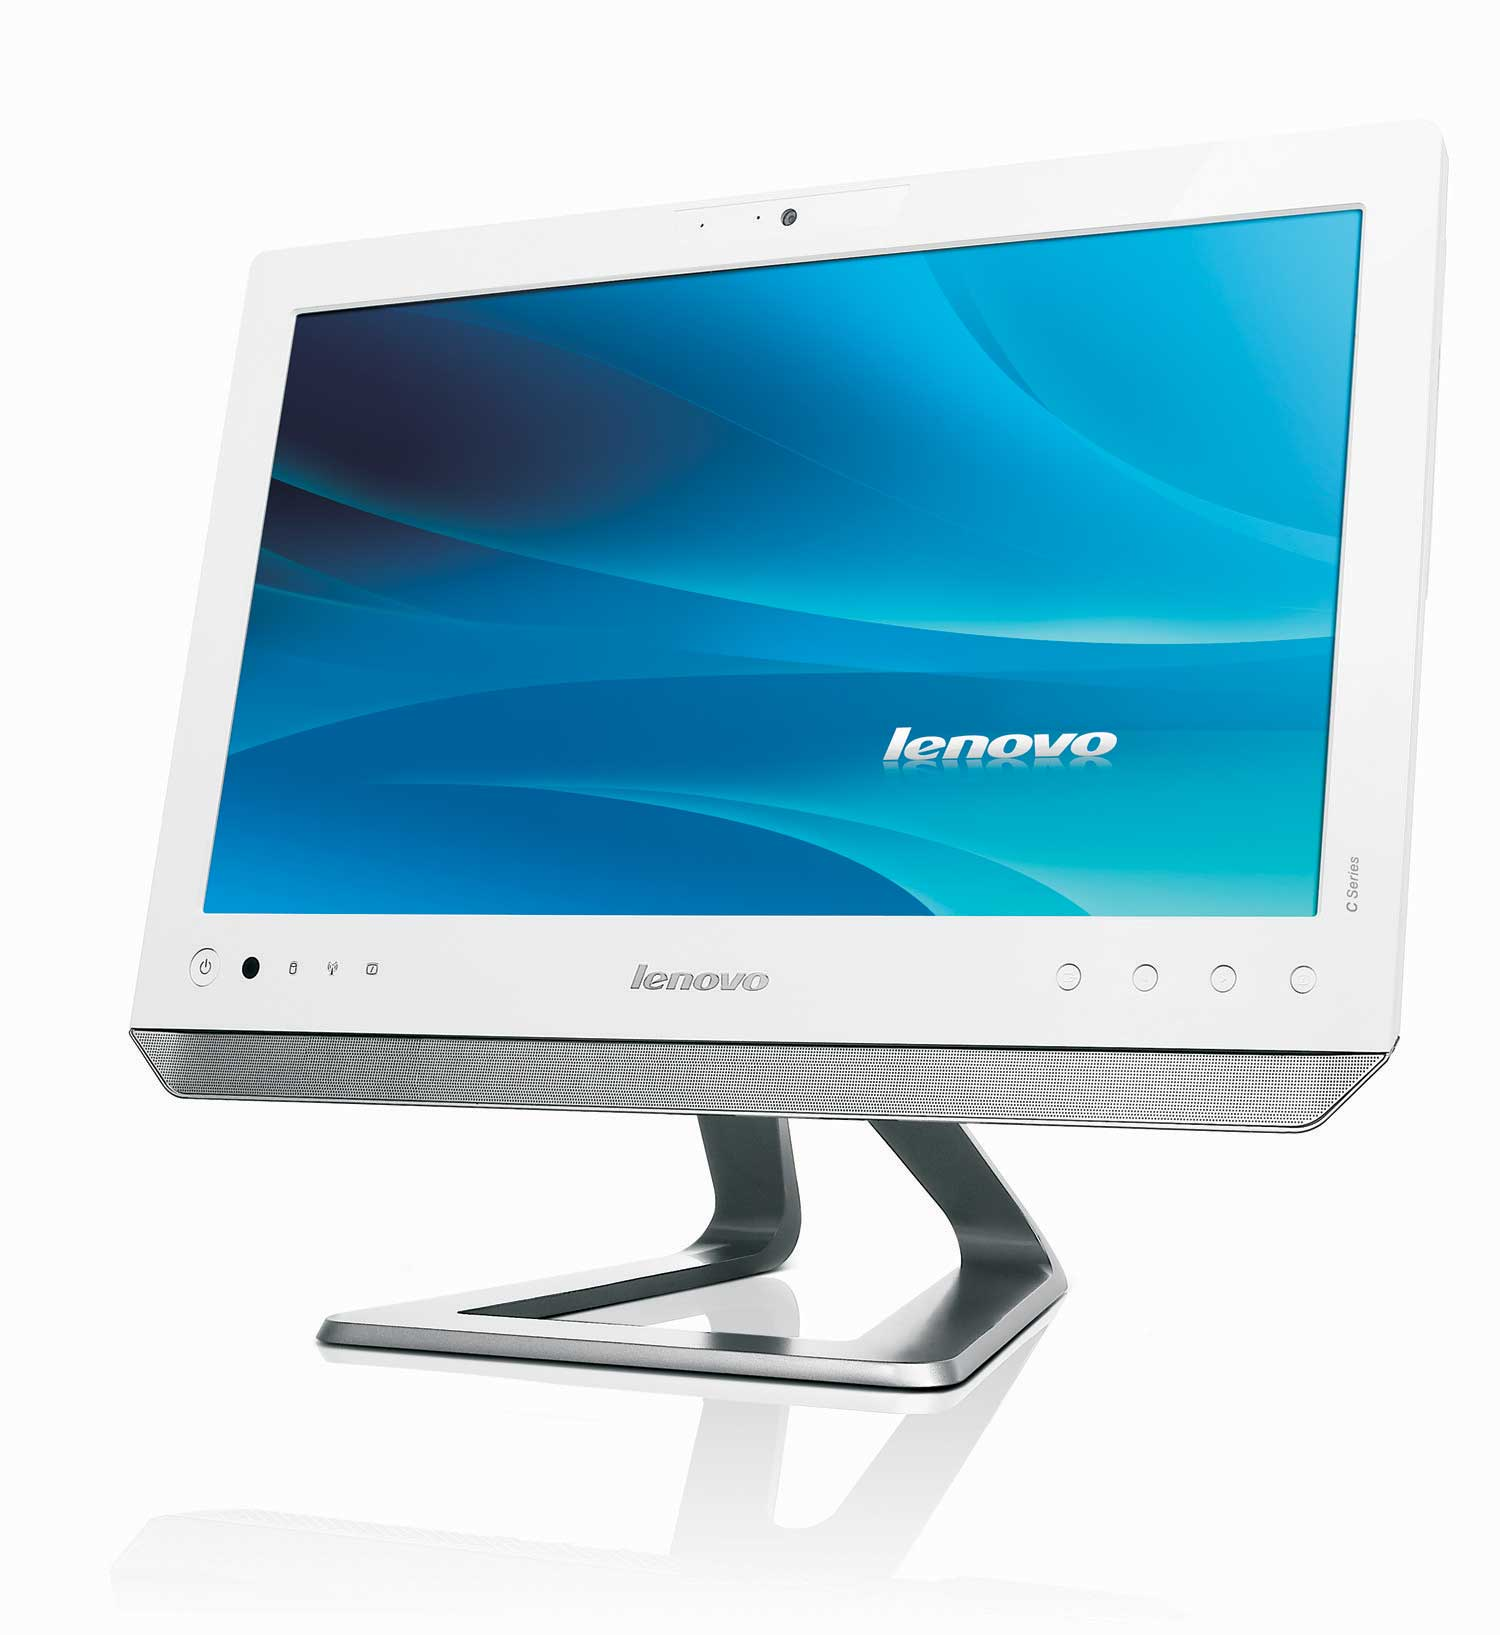 lenovo c325 20 inch multi touch all in one desktop pc electronics. Black Bedroom Furniture Sets. Home Design Ideas